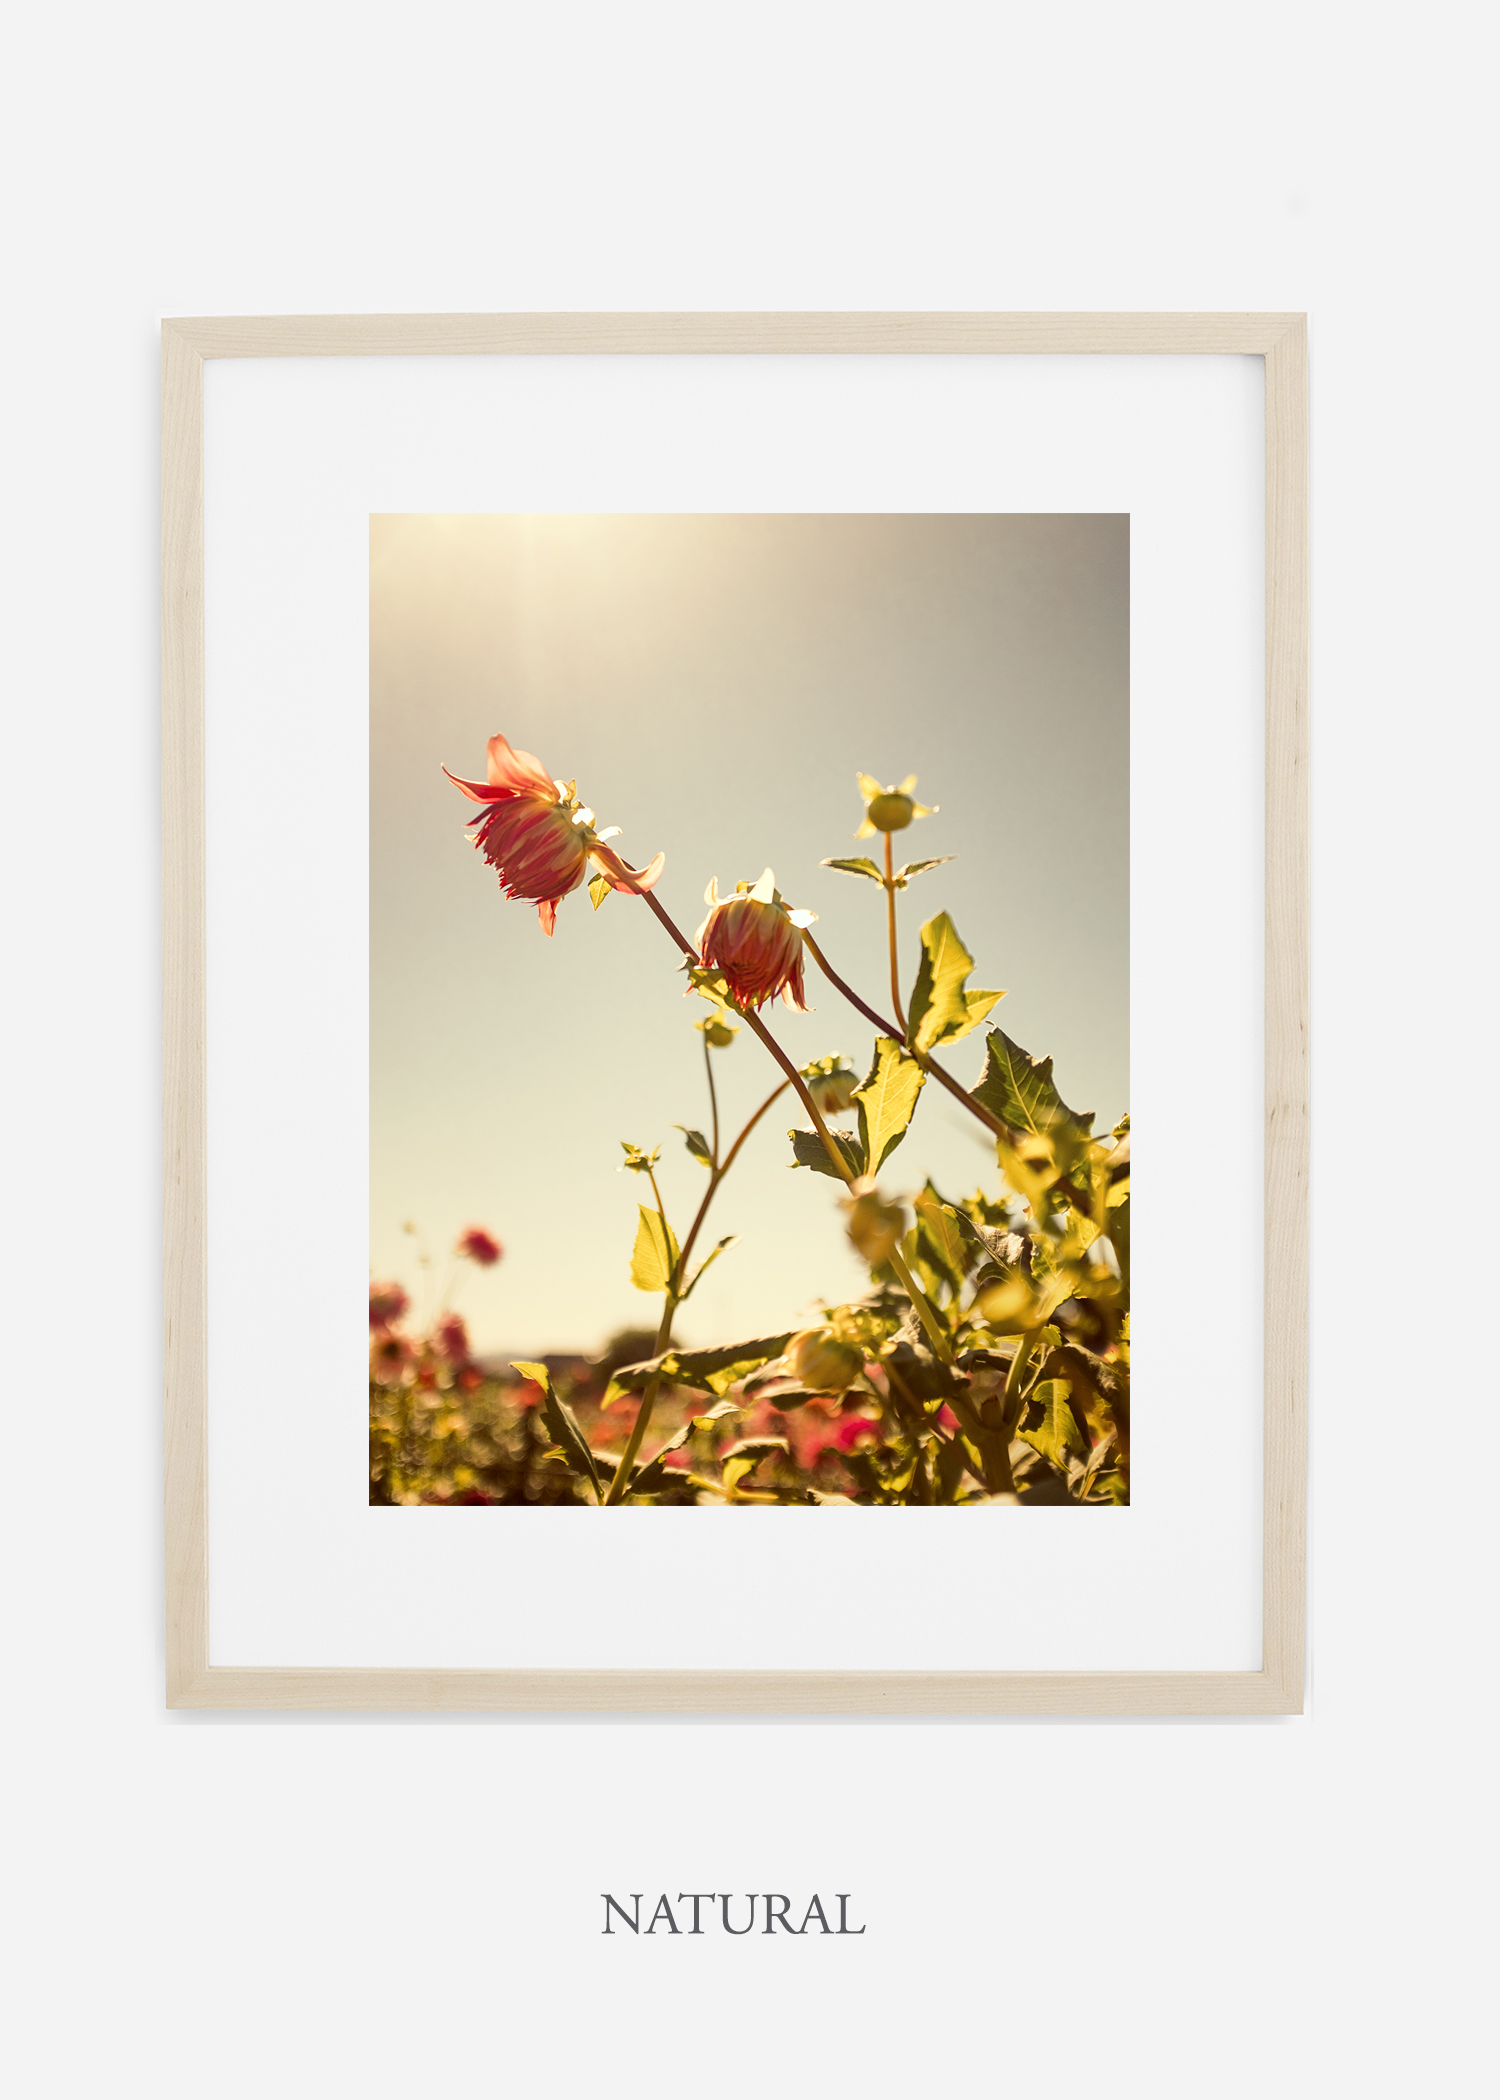 flora-no-10-natural-mat-custom-frame-dahlia-print-floral-print-floral-art-wilder-california-botanical-prints-home-decor-design-prints-print-shop.jpg